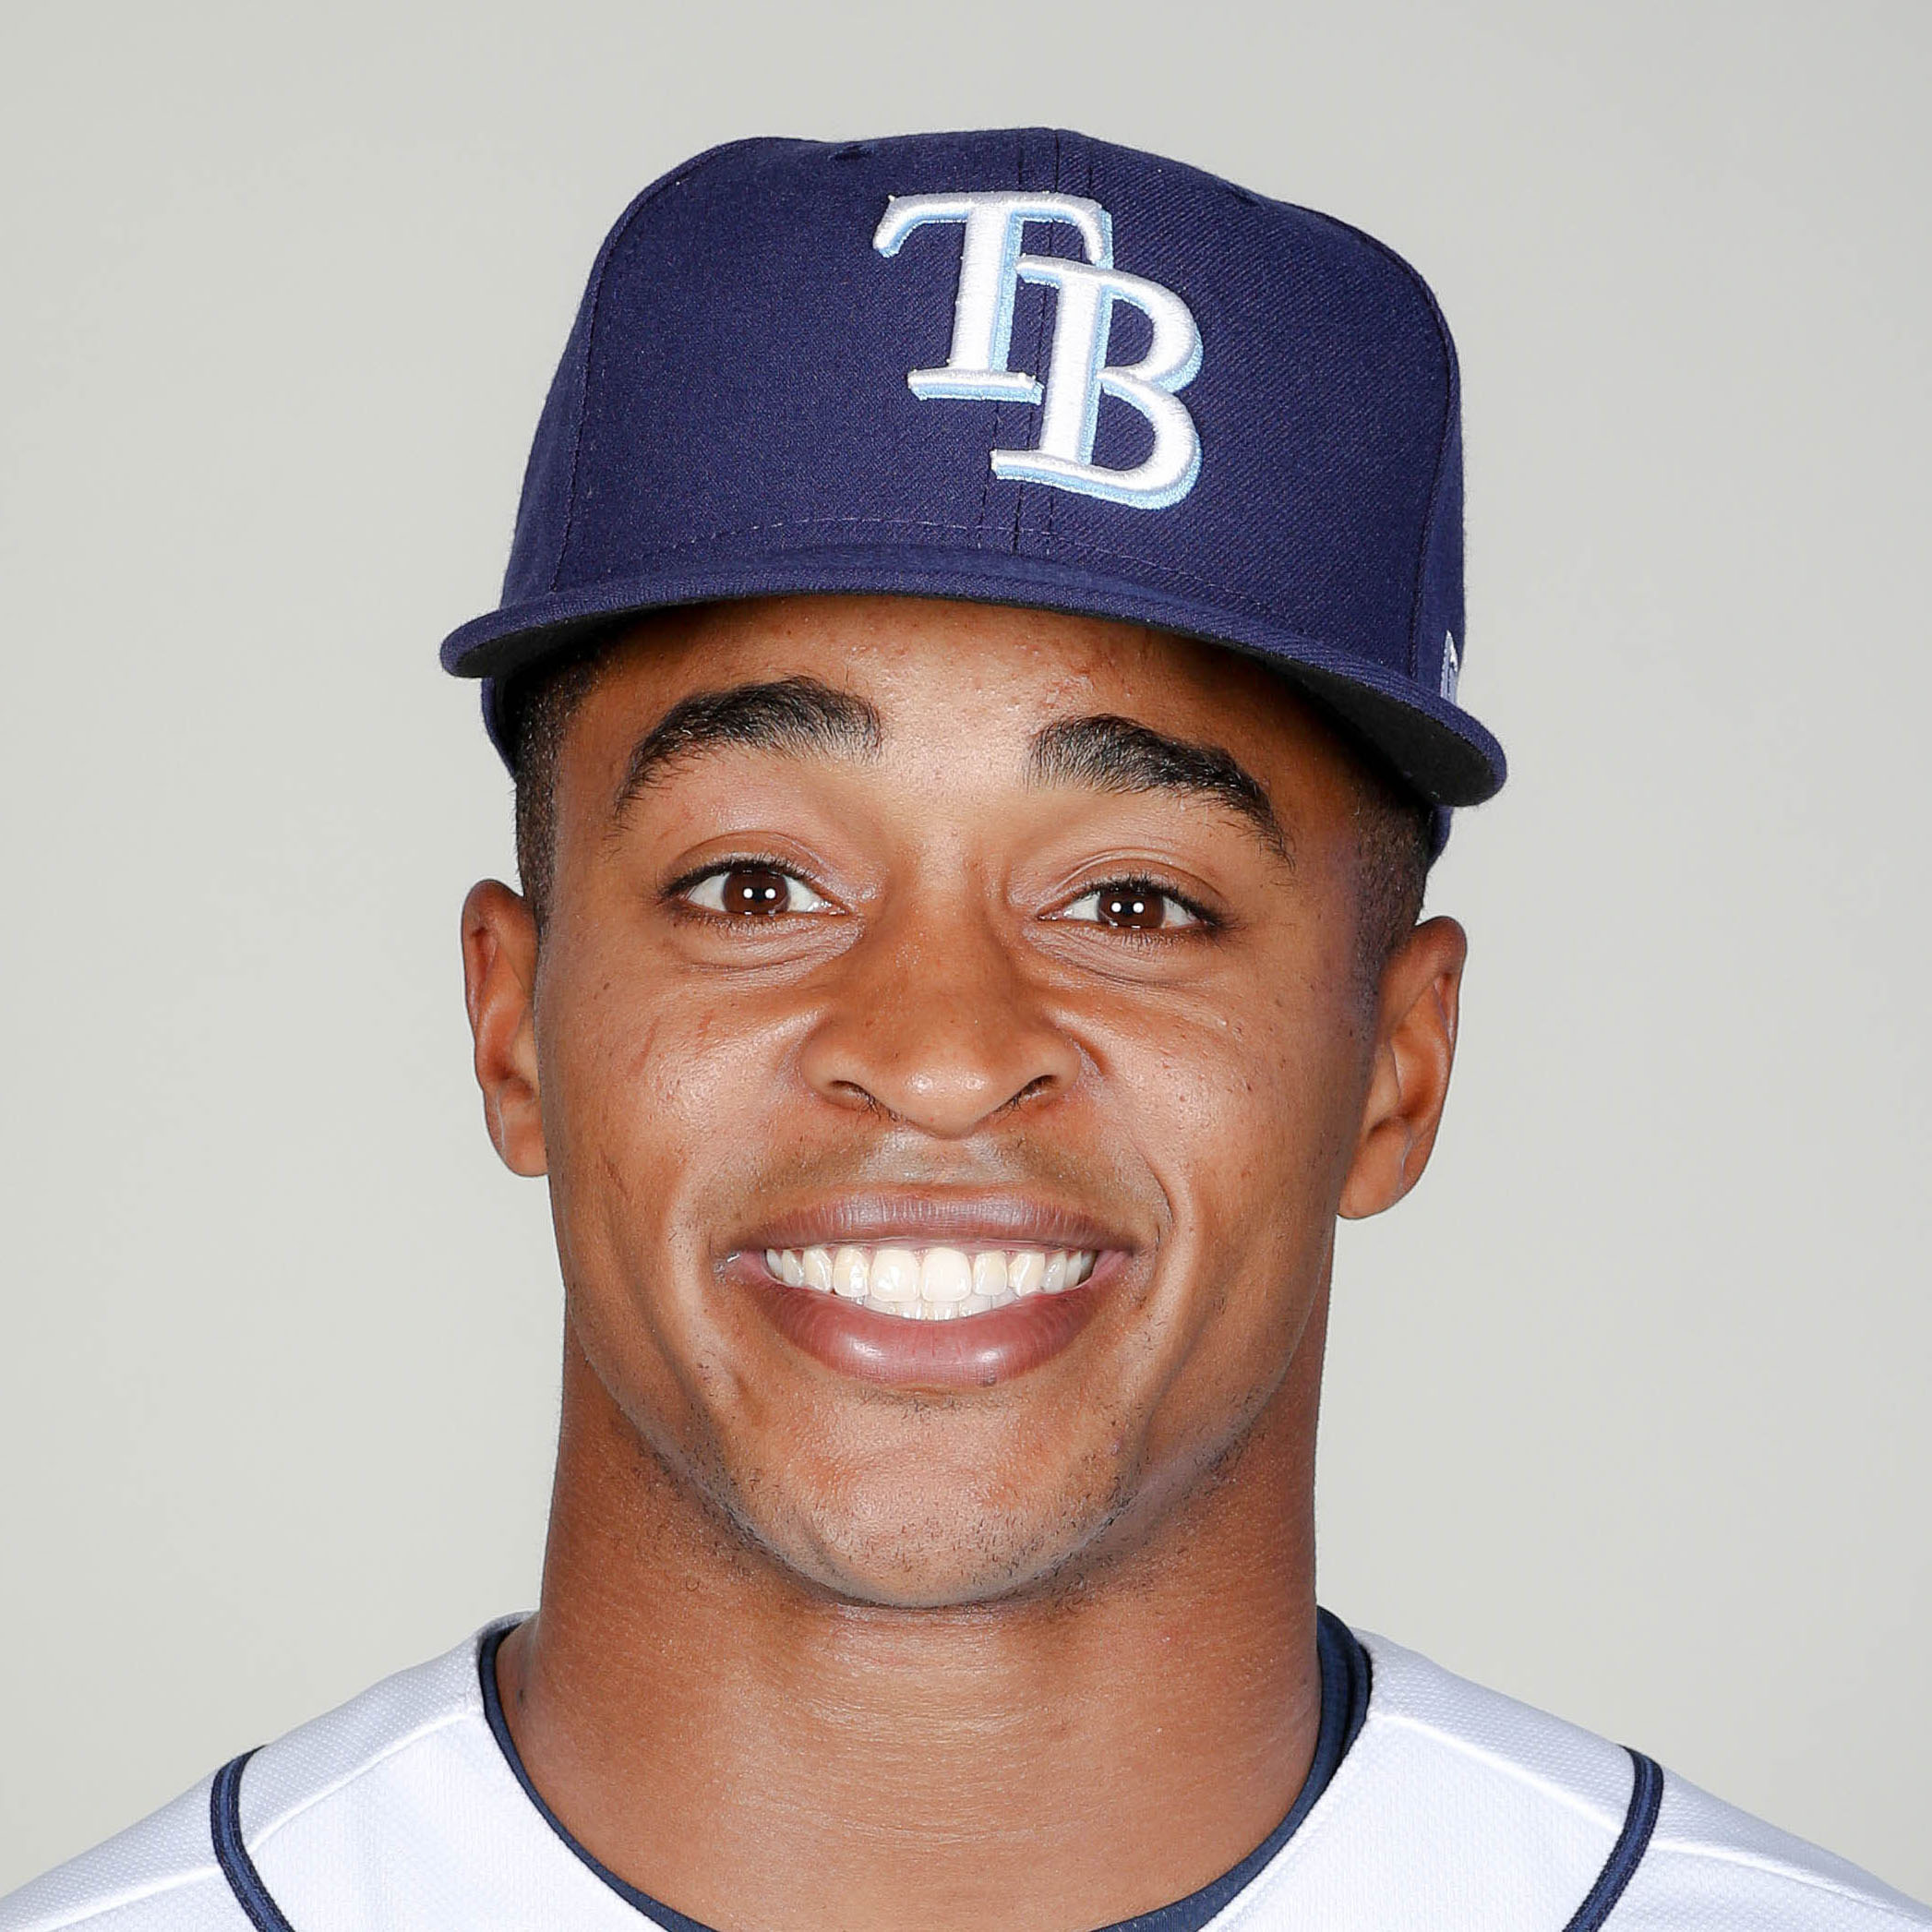 Mallex Smith (L) Headshot